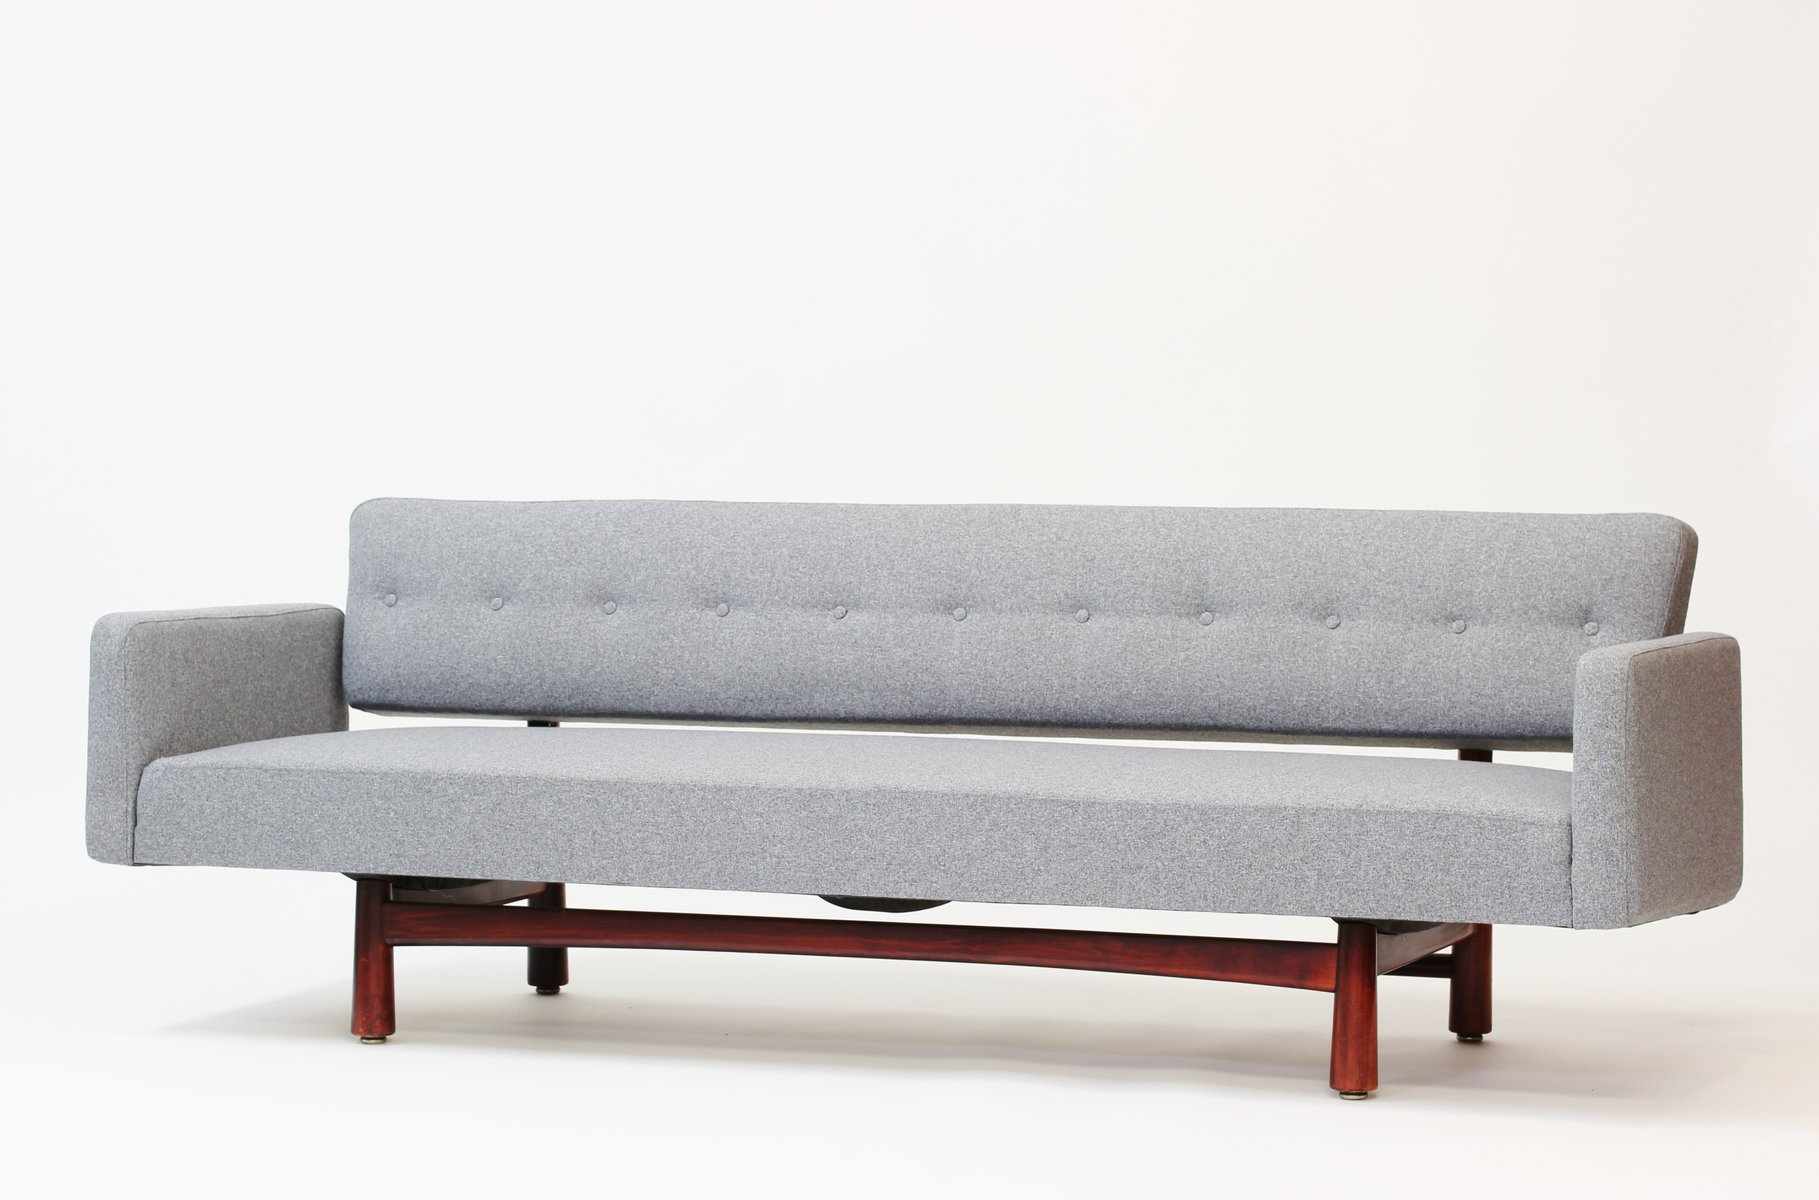 Amazing New York Sofa By Edward Wormley For Ljungs Industrier/DUX, 1950s